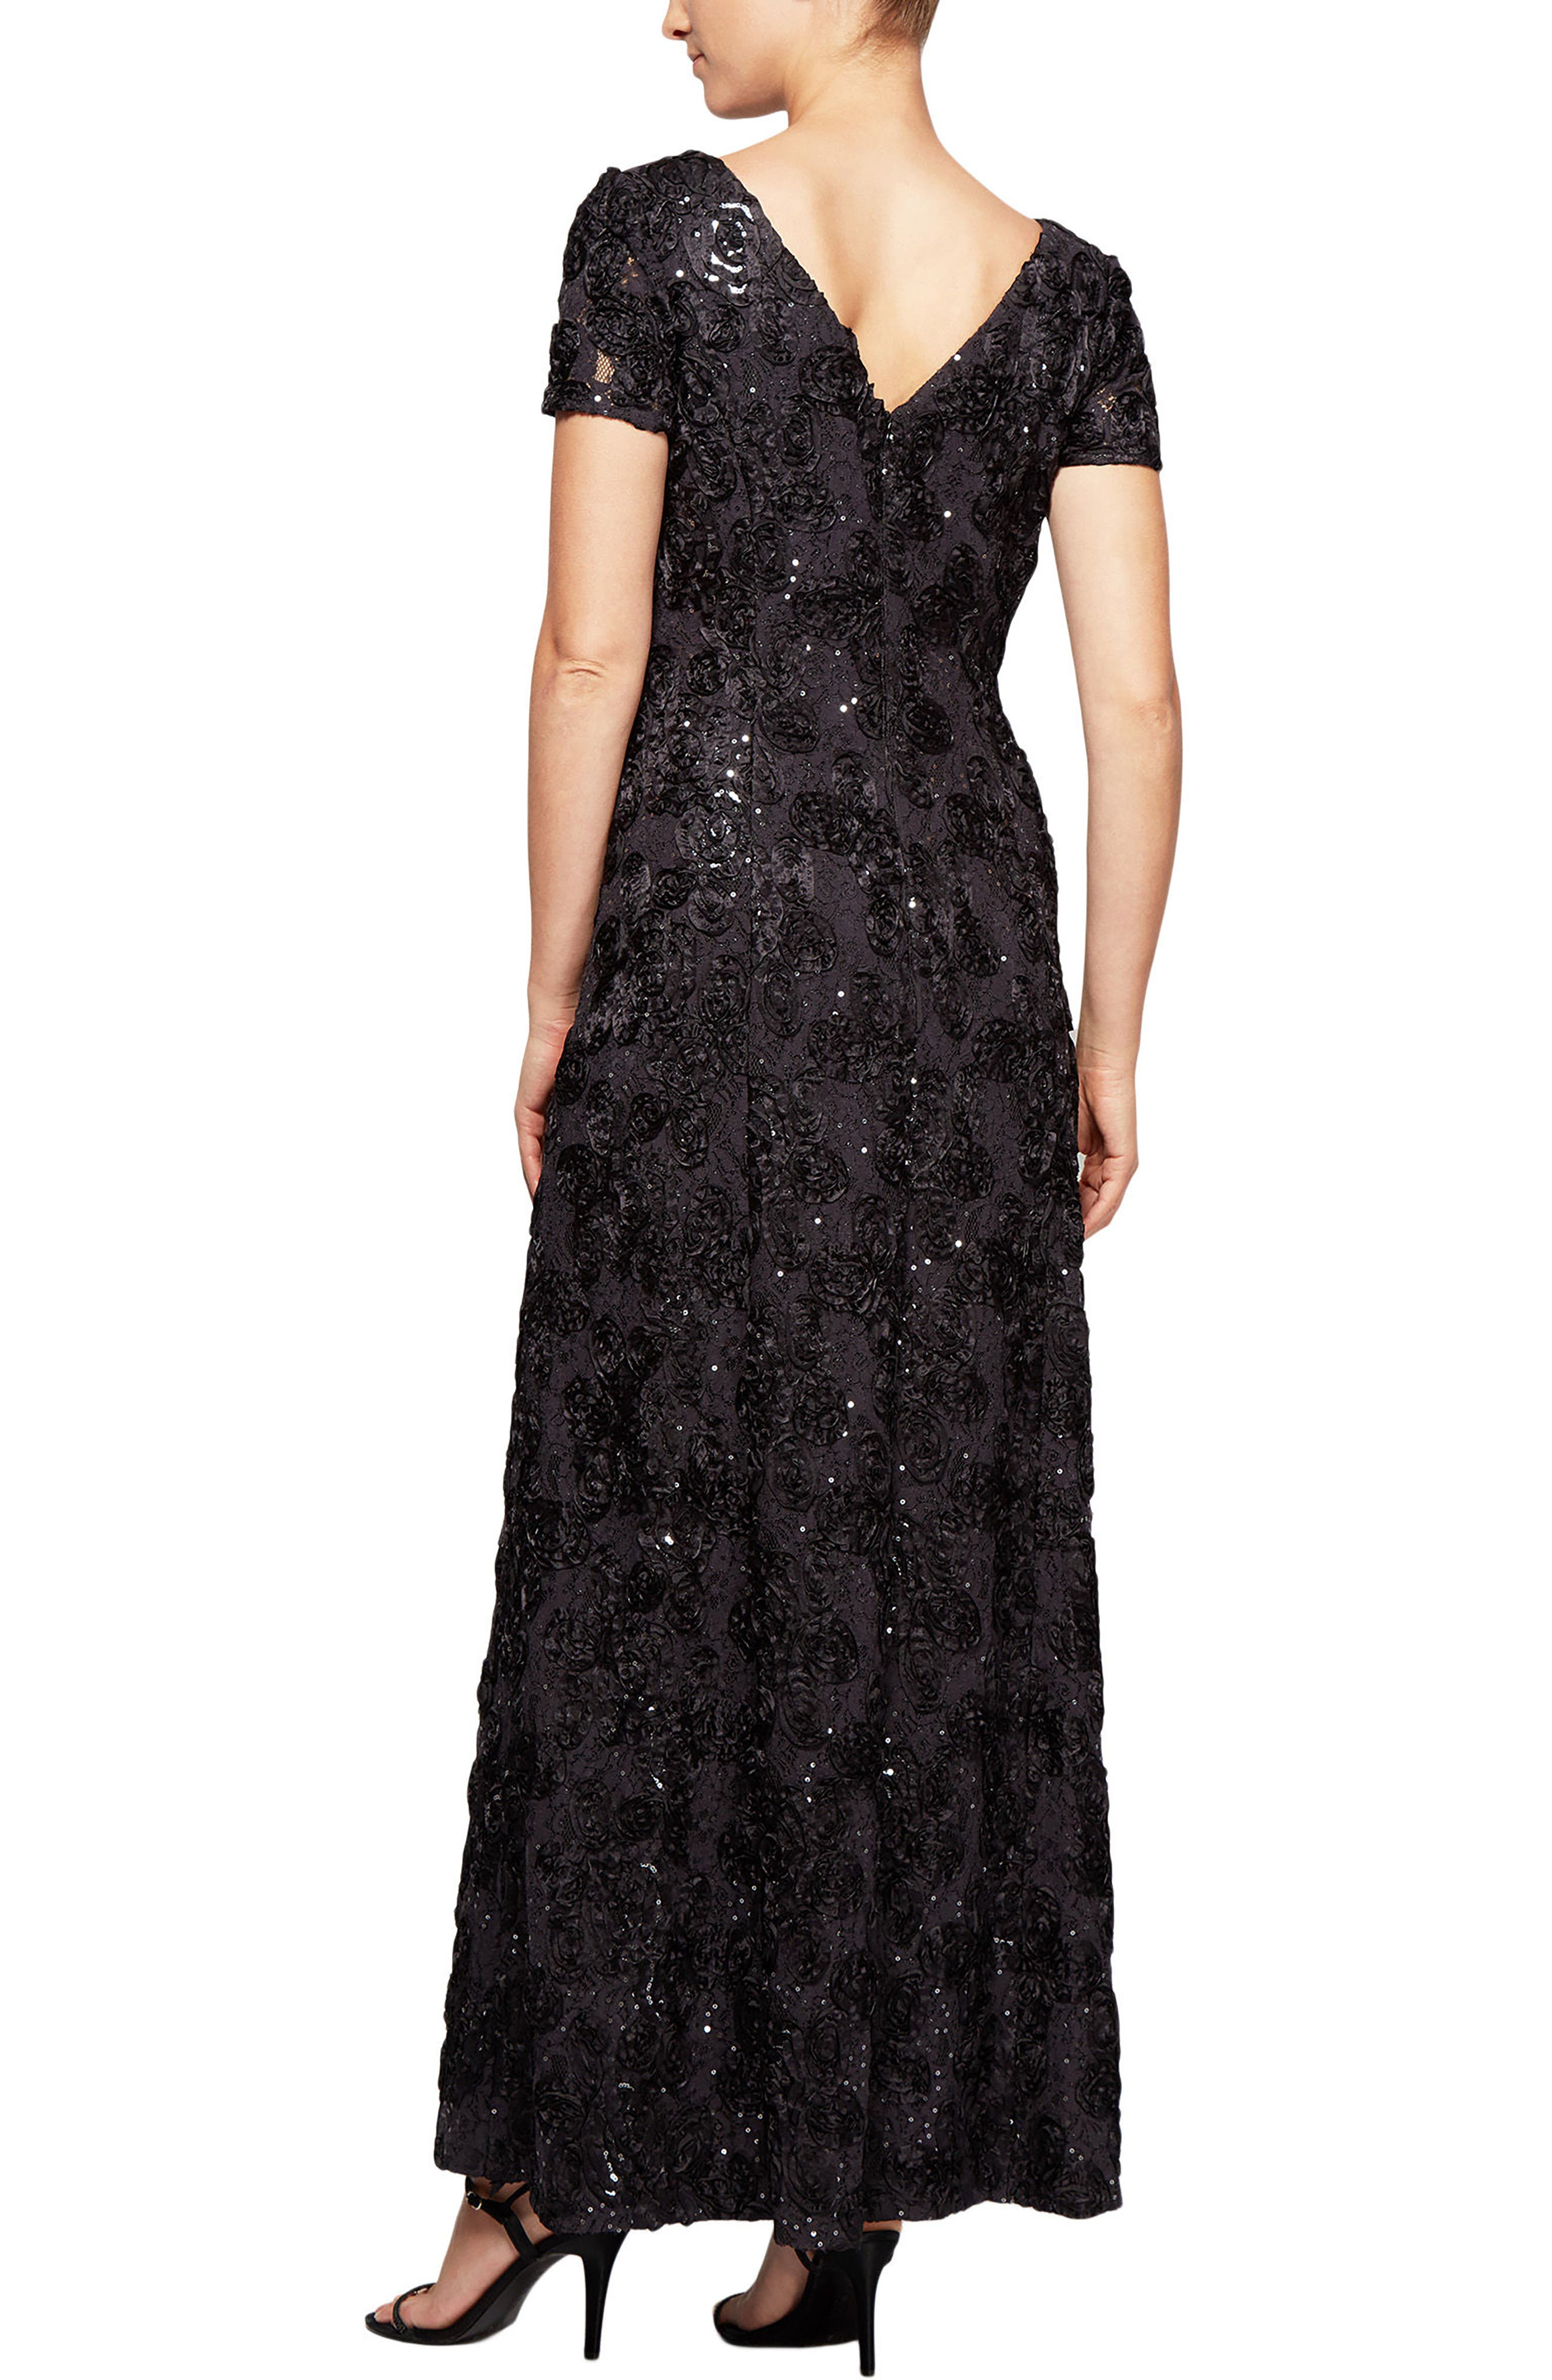 ALEX EVENINGS,                             Embellished Lace Gown,                             Alternate thumbnail 2, color,                             024